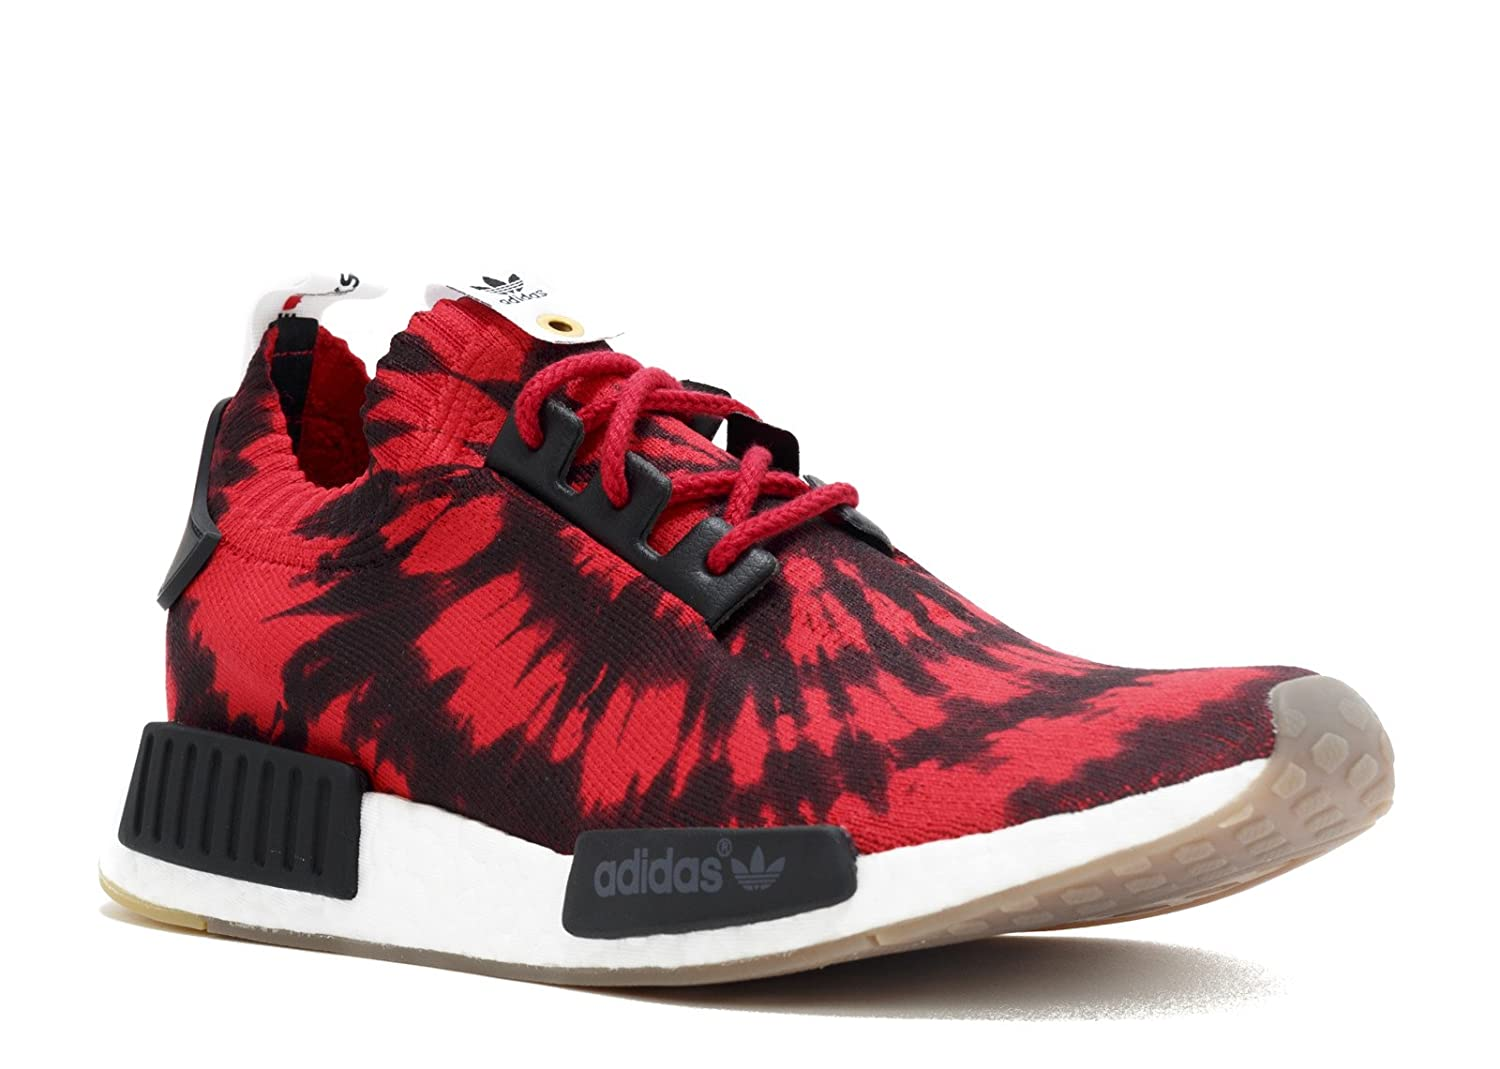 9dcf76443 adidas NMD R1 PK Nice Kicks  Nice Kicks  - AQ4791  Amazon.co.uk  Shoes    Bags